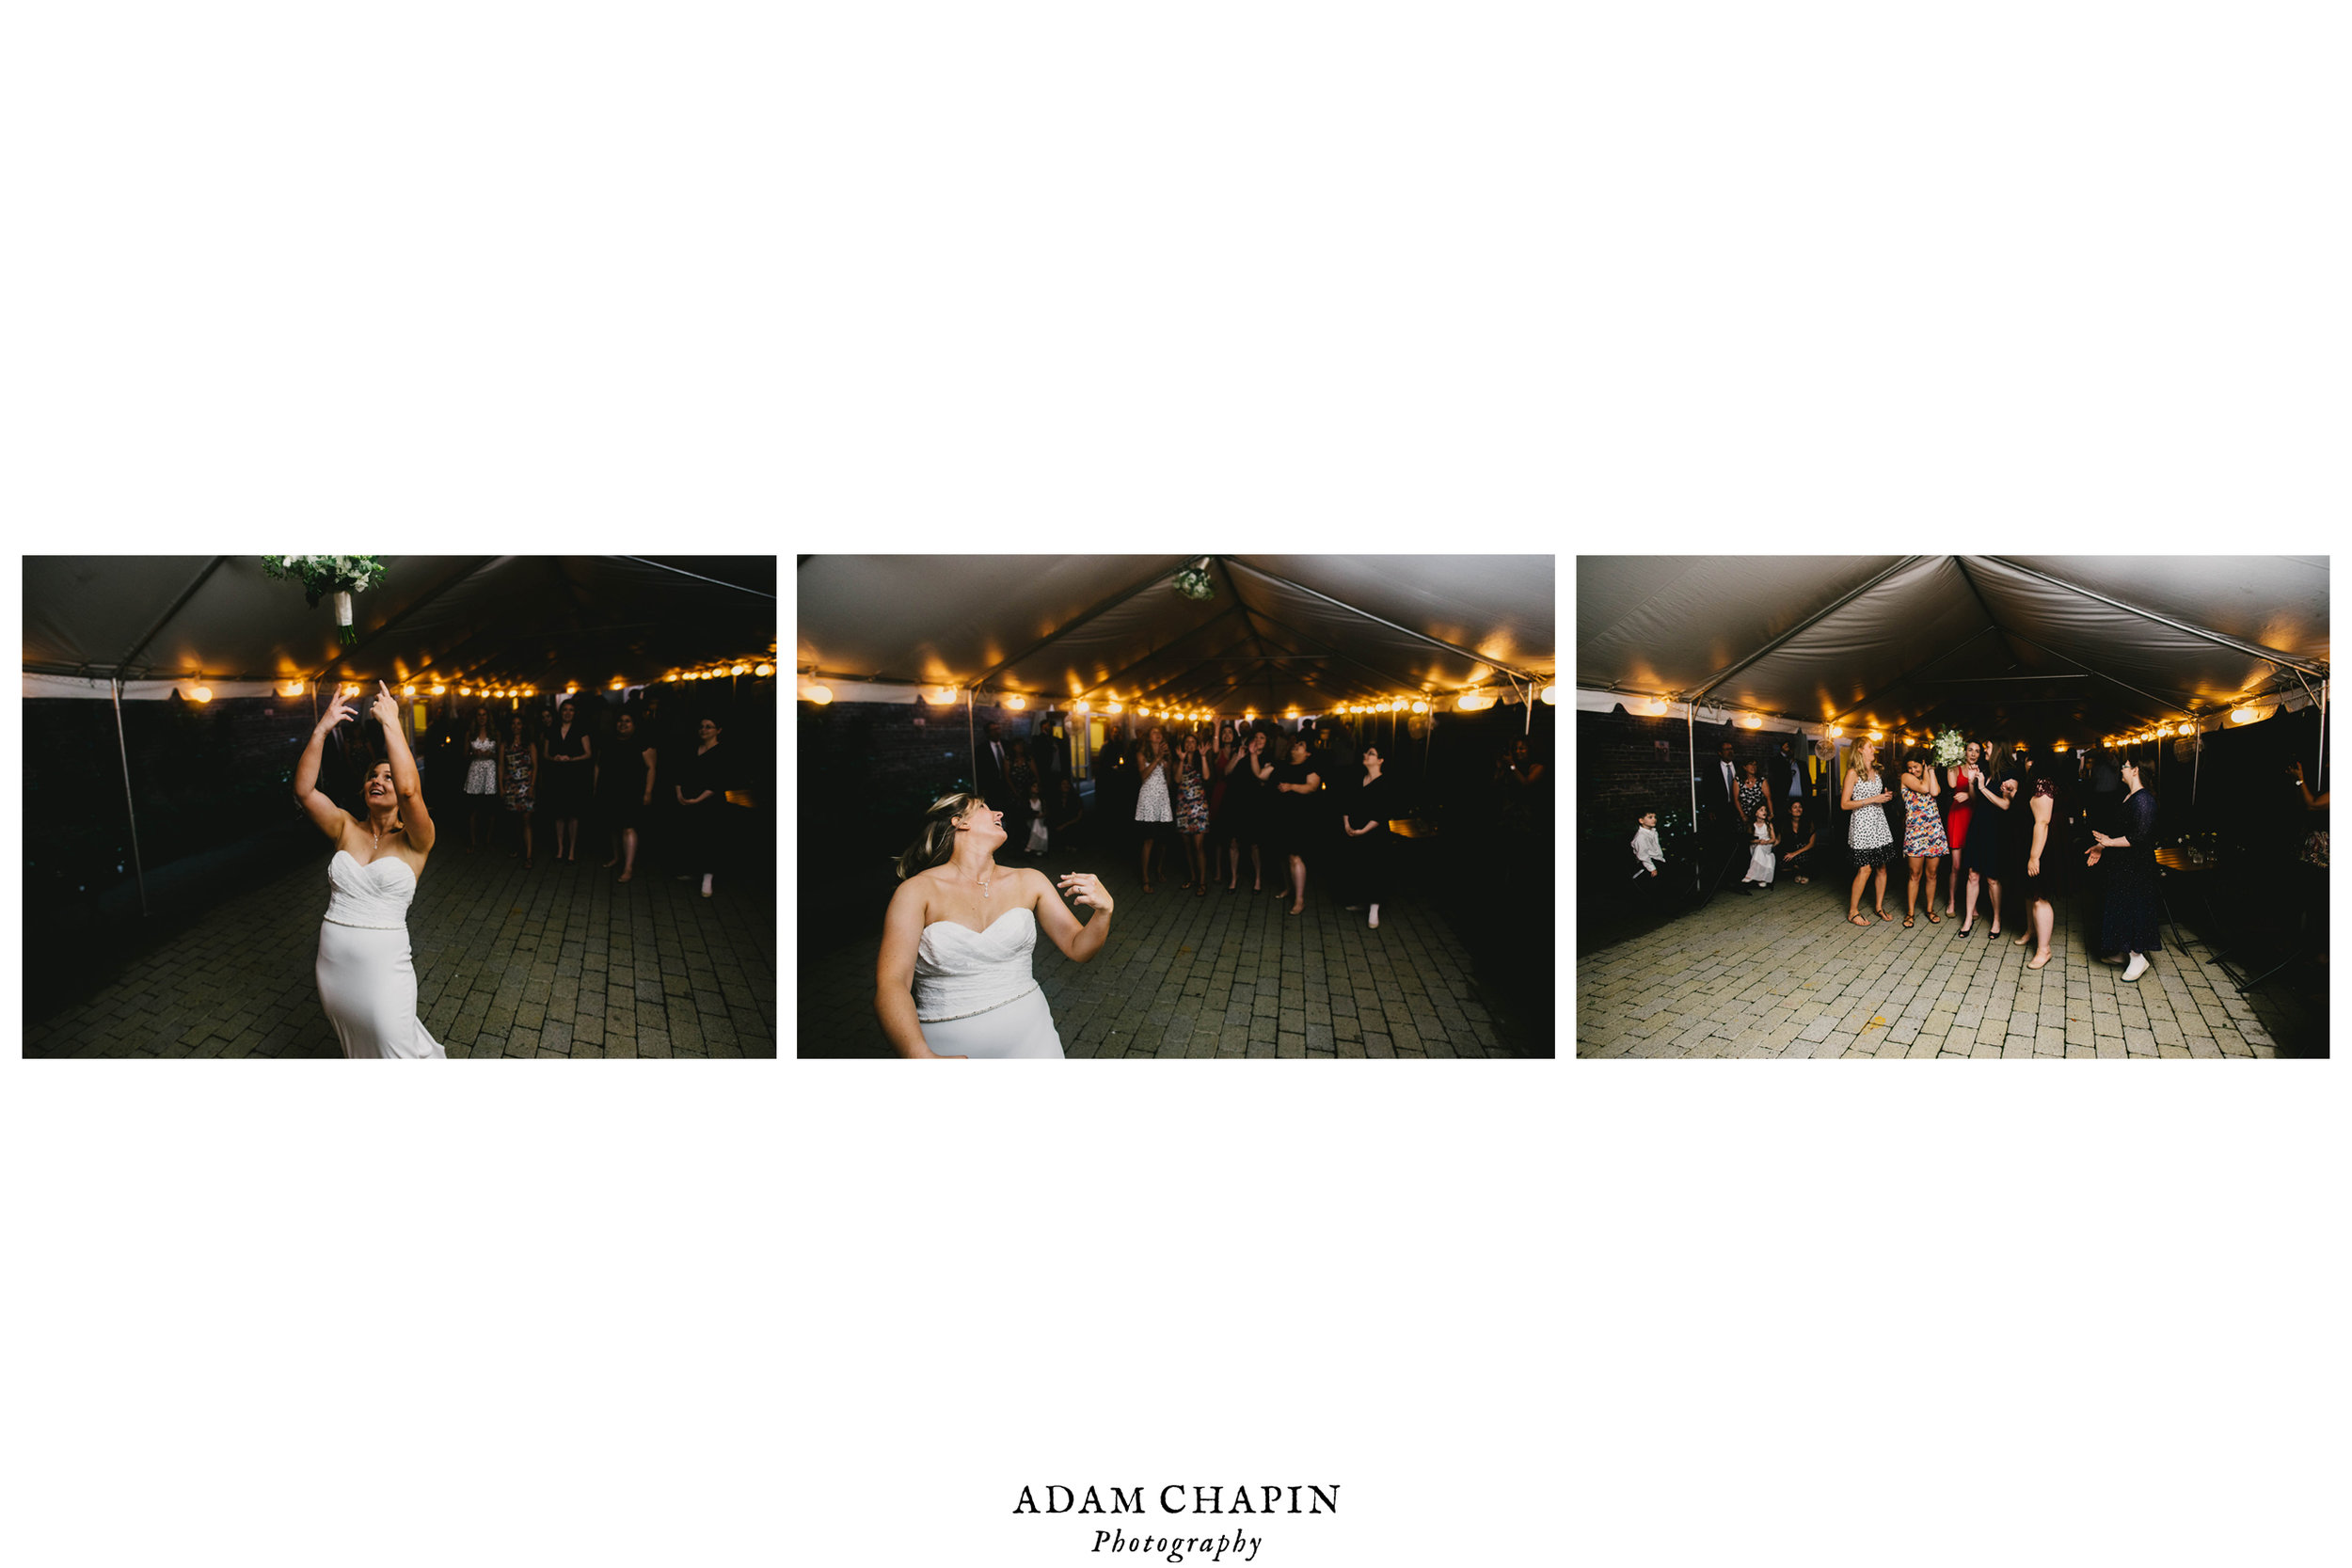 brides bouquet toss during their Jiddi Space and Courtyard Wedding at Sitti Restaurant